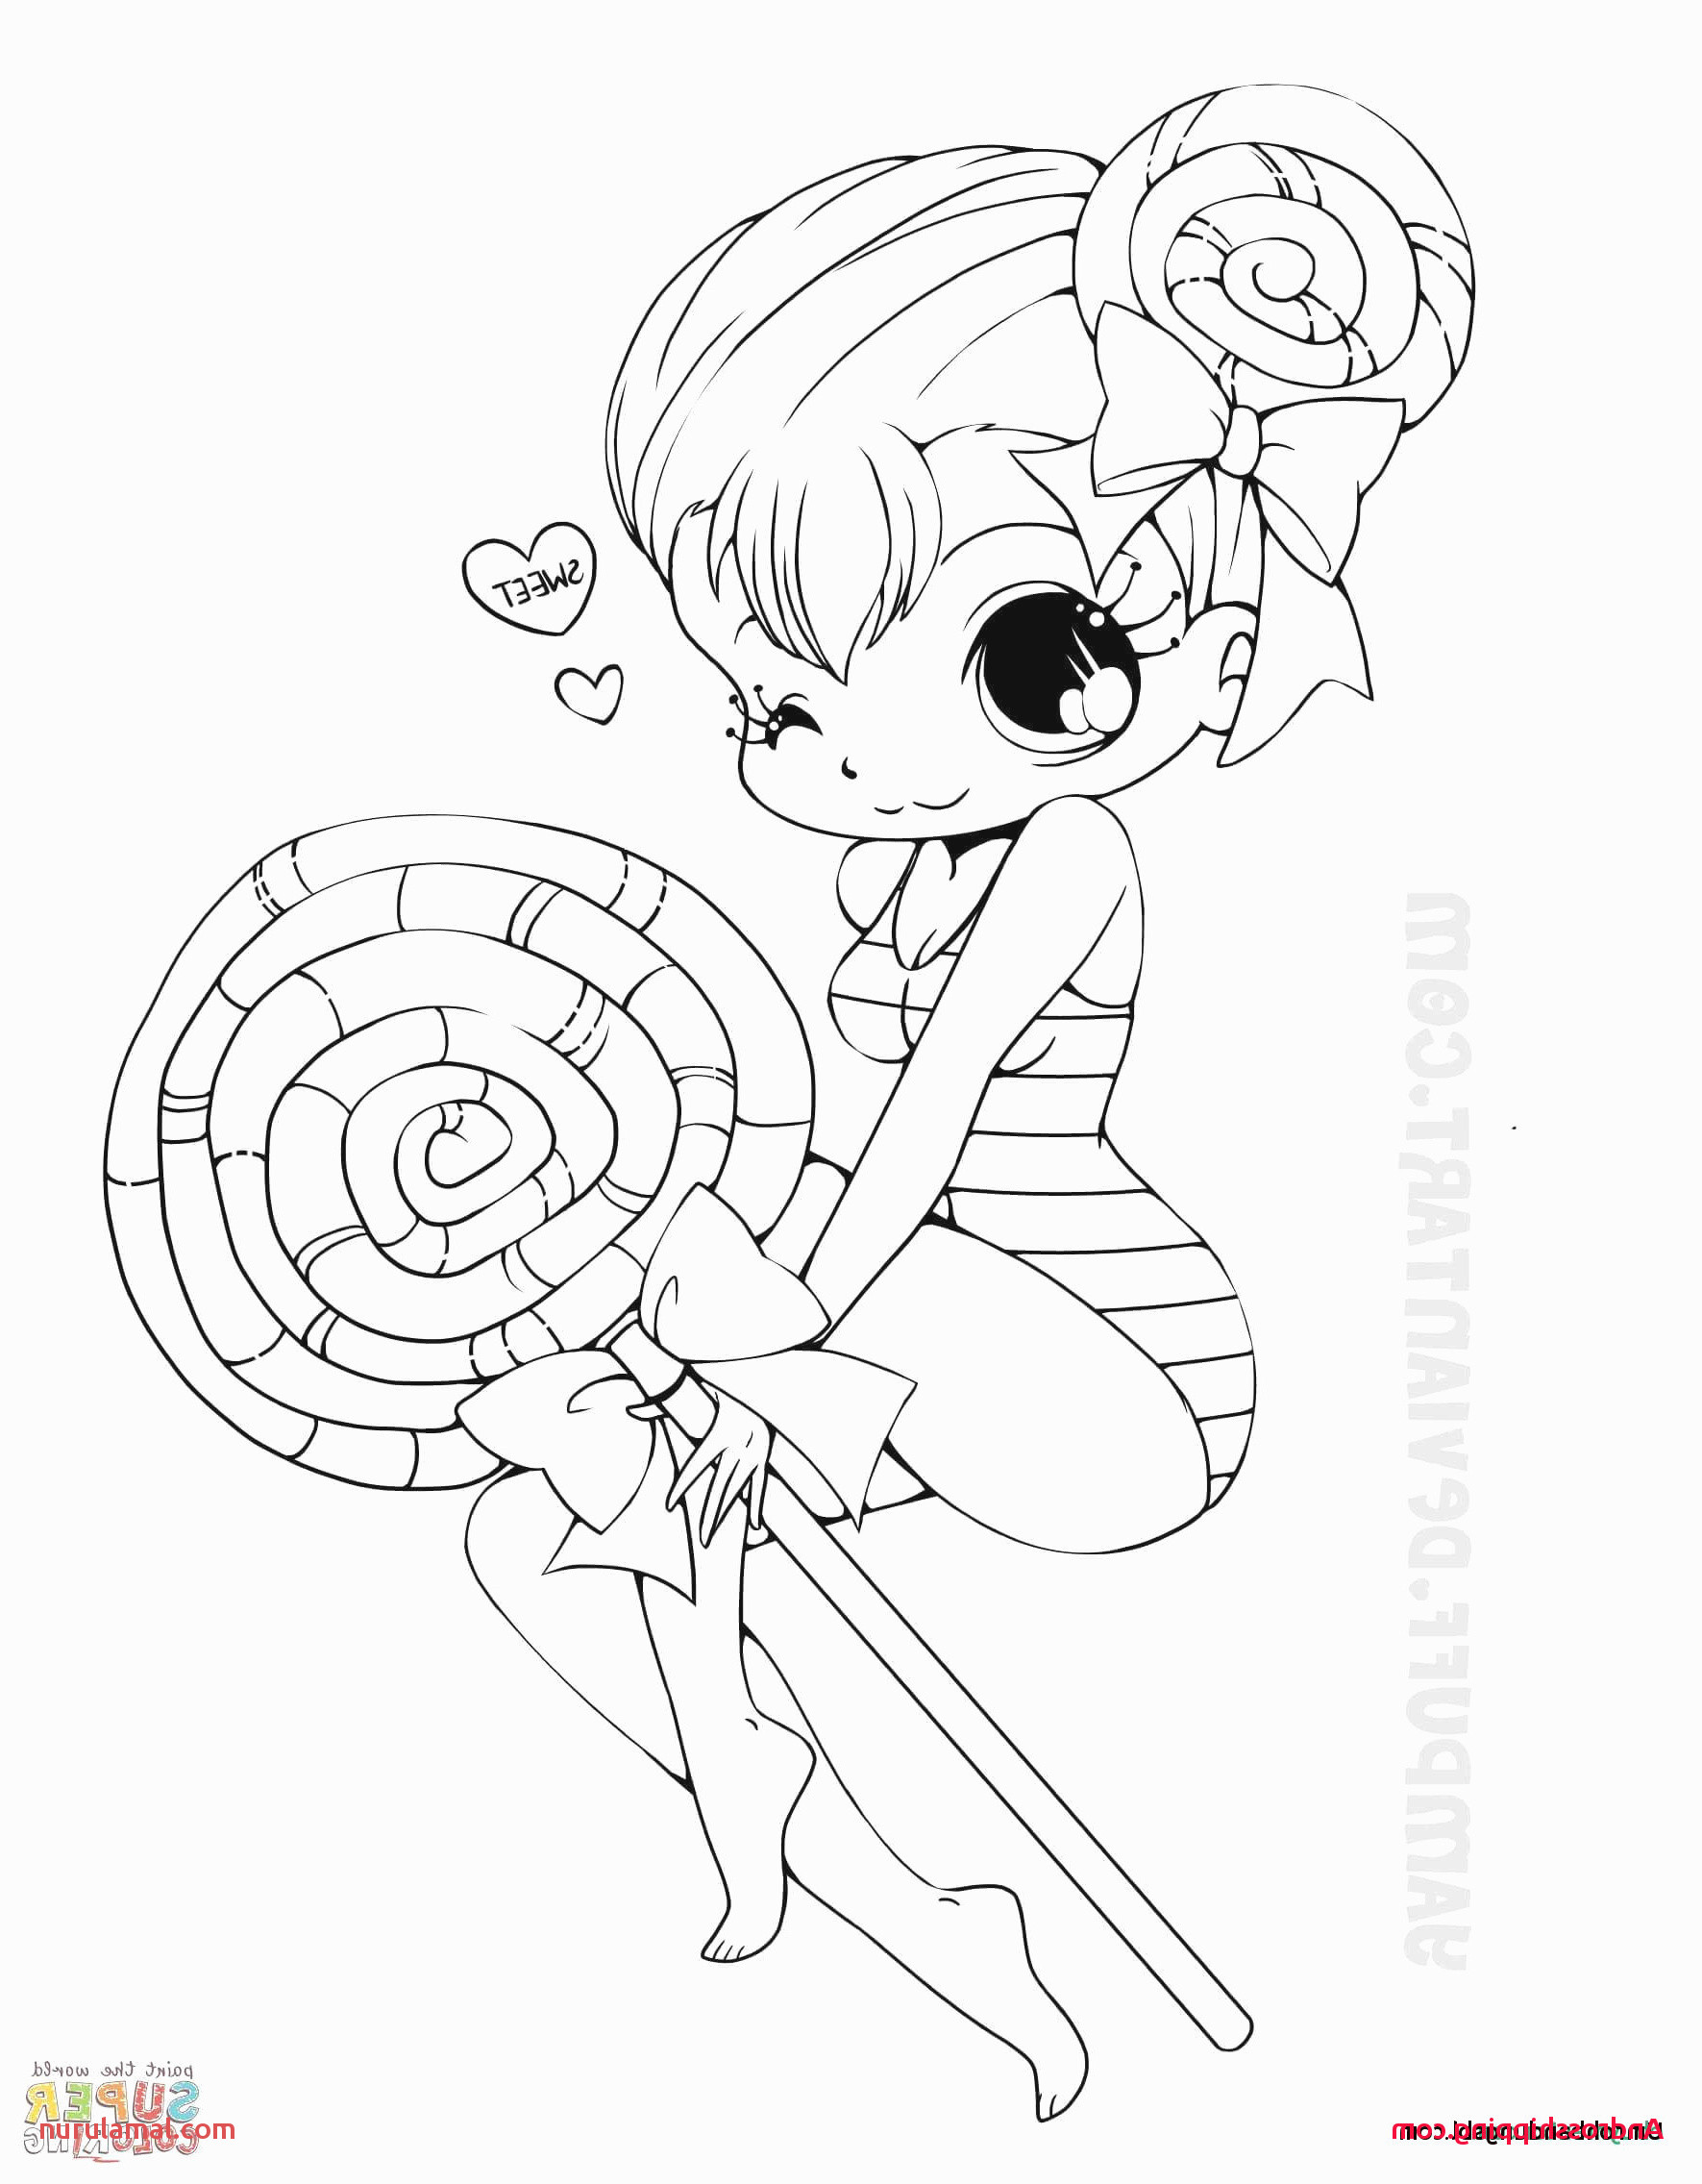 printable girl coloring page cool images 20 fresh coloring pages baby penguins androsshipping of printable girl coloring page